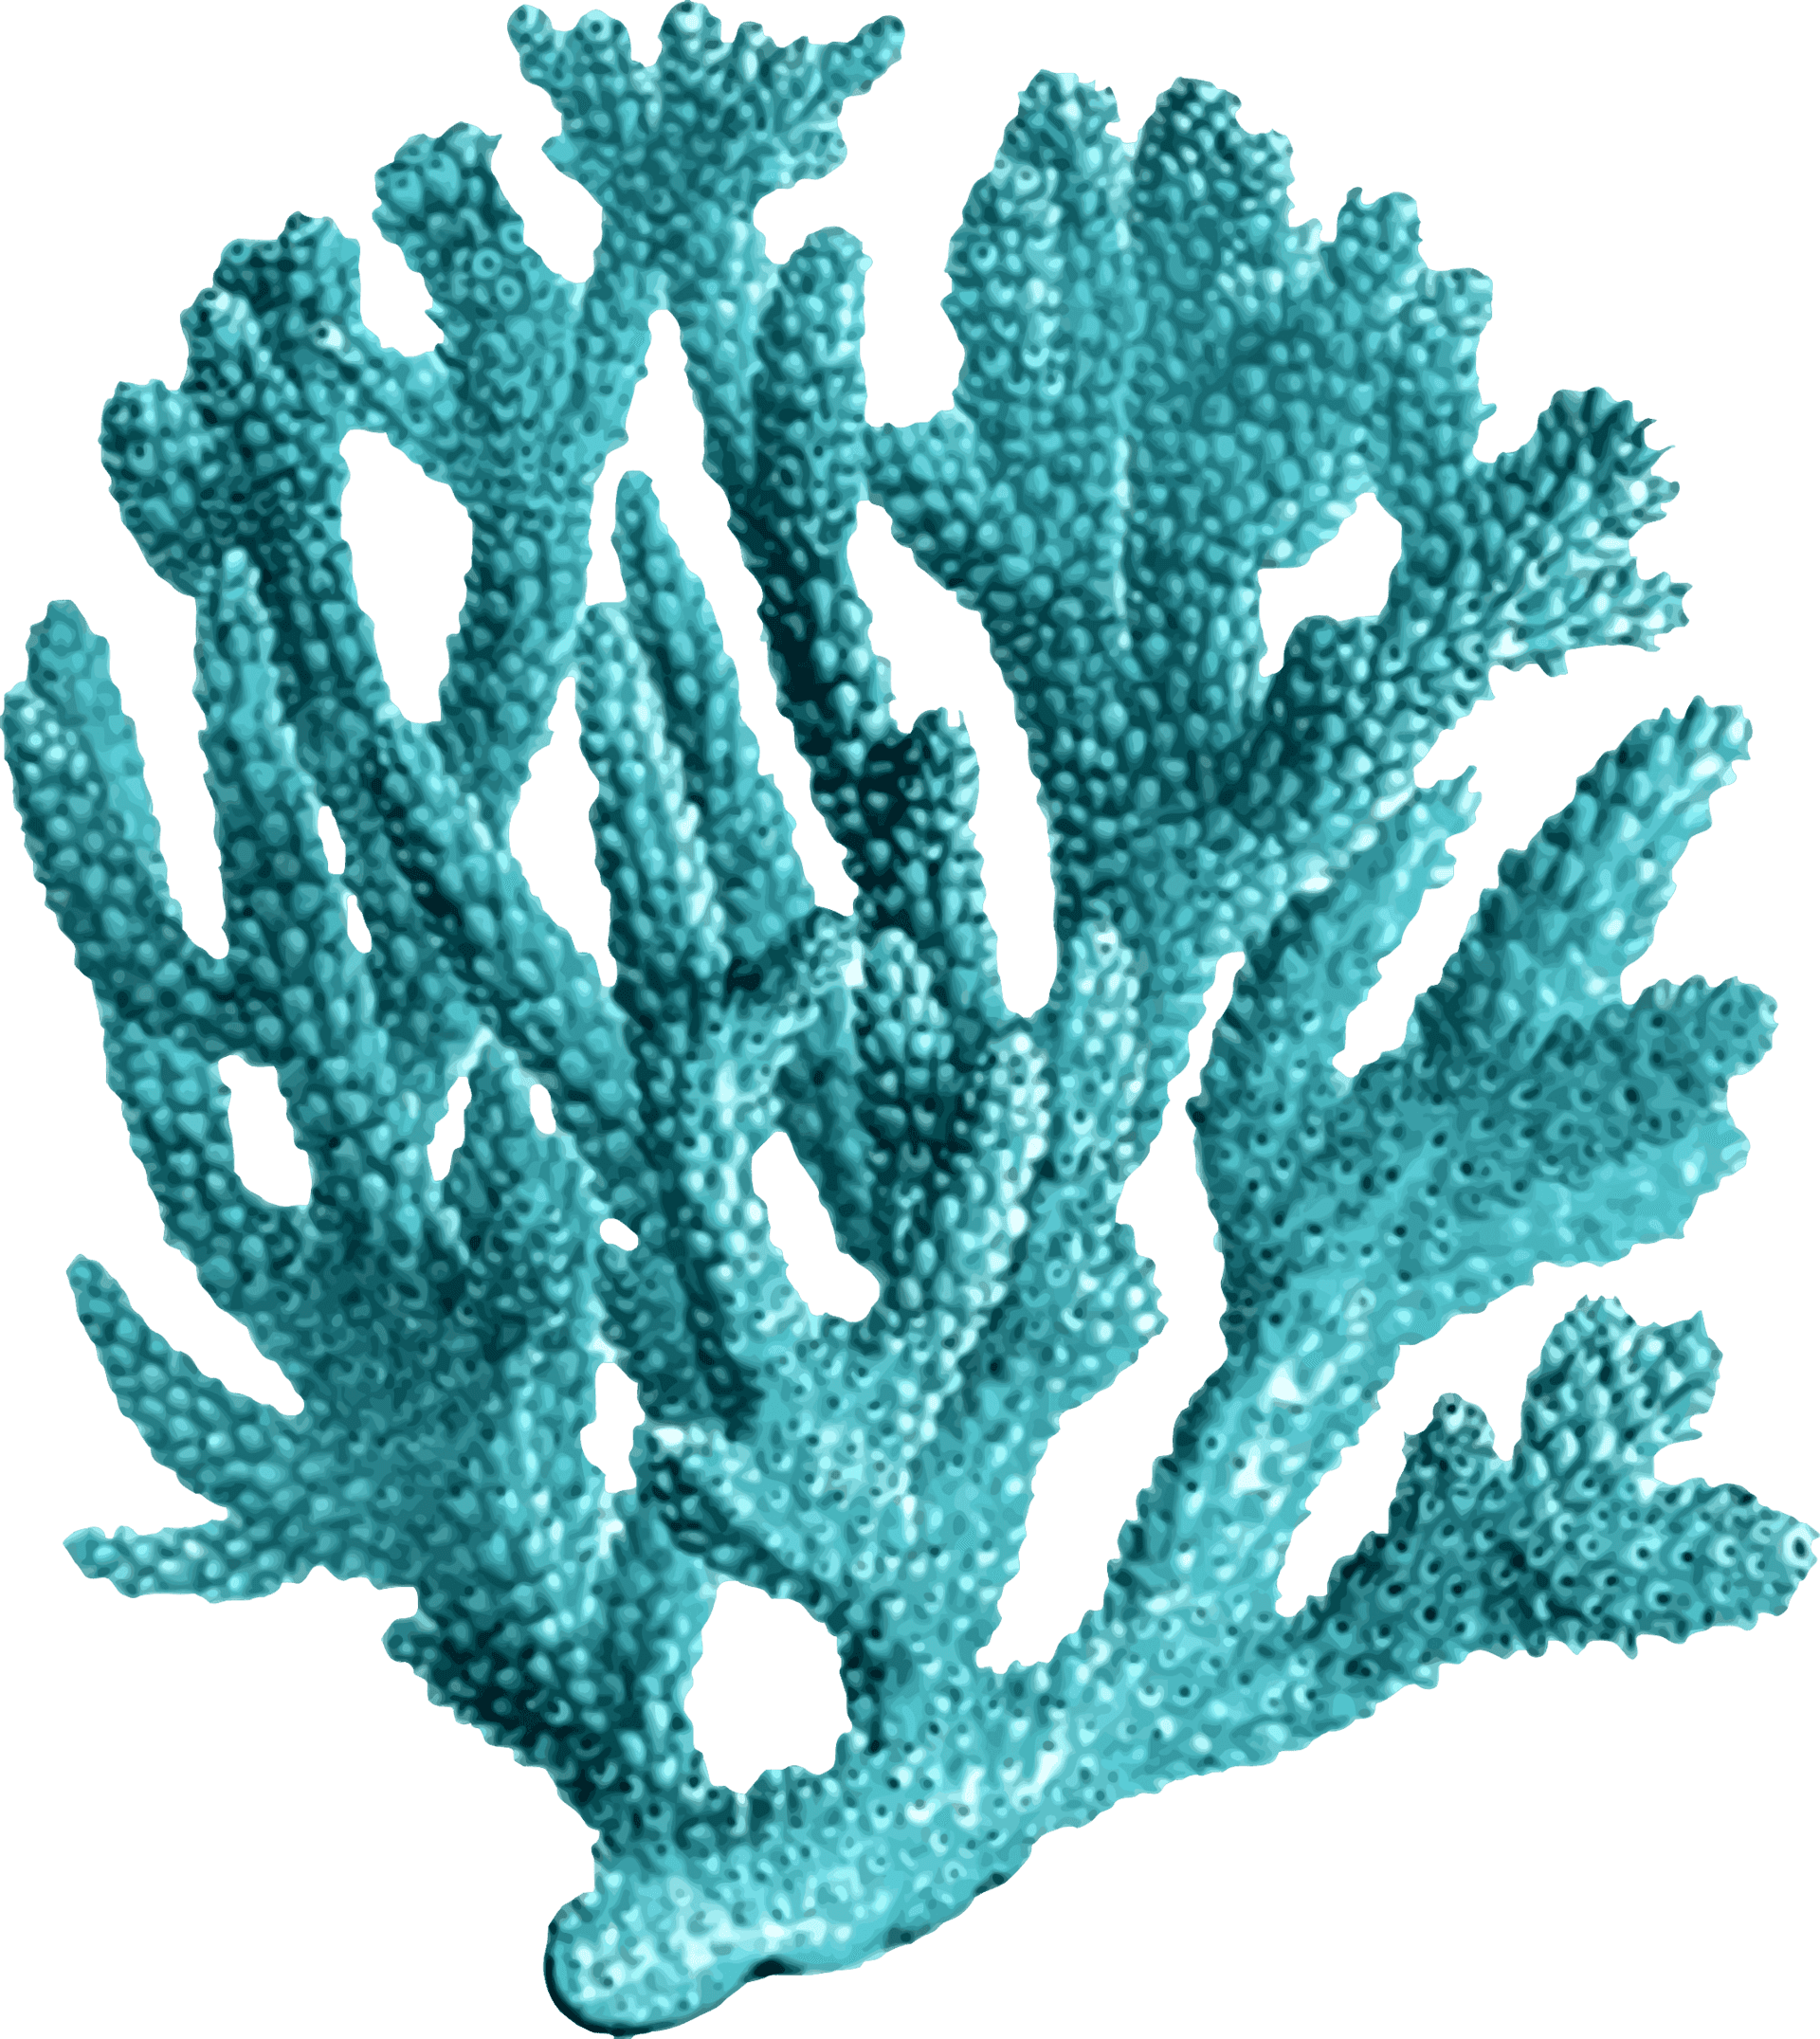 Clipart ocean coral reef ecosystem. World summit from february